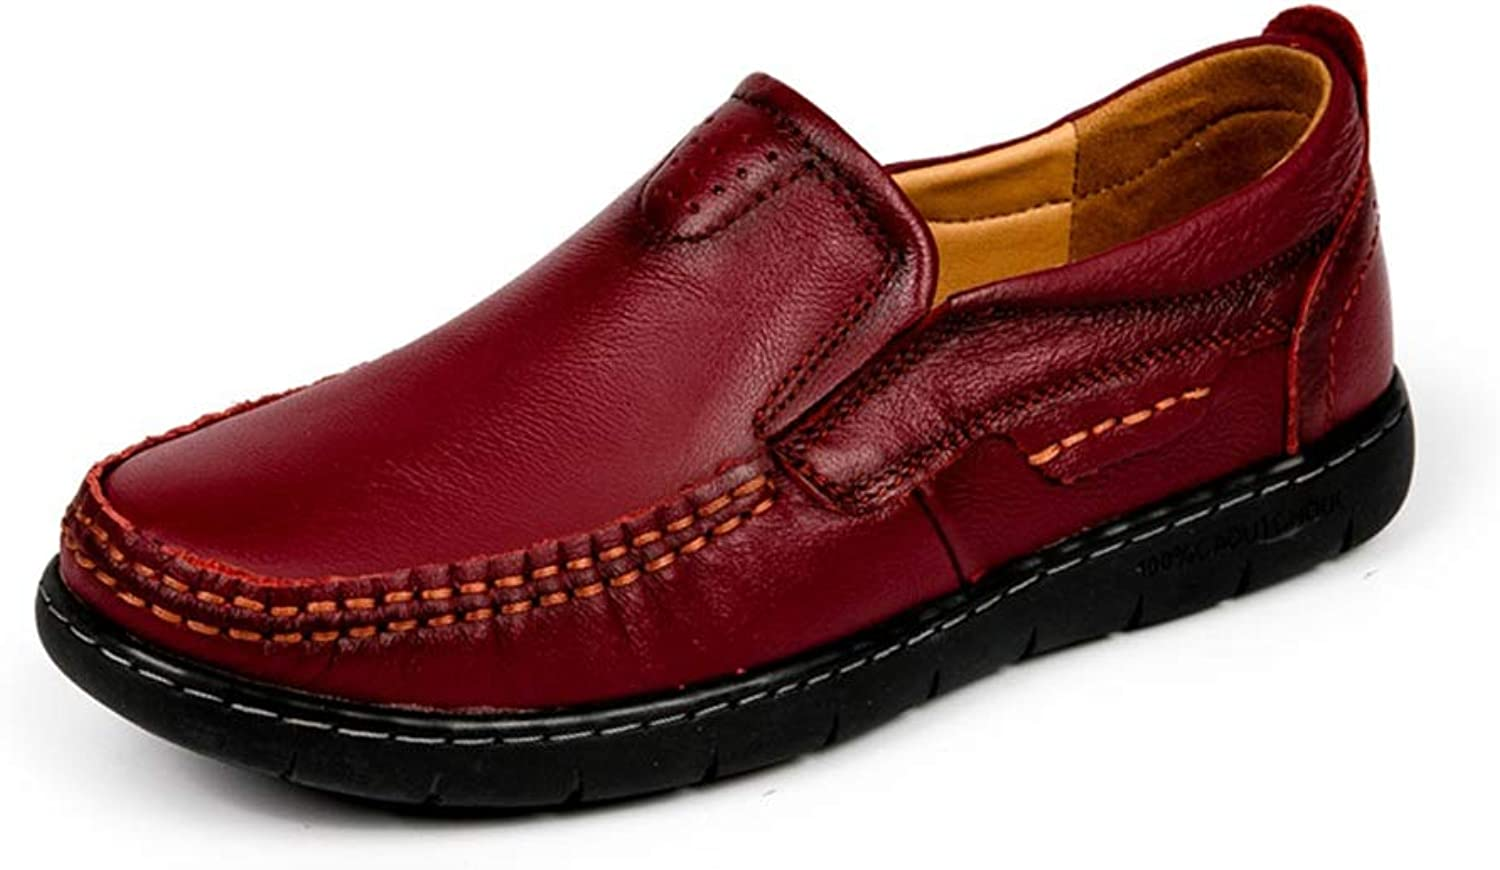 MUMUWU Women's Oxford shoes Genuine Penny Loafers Lightweight Anti-Slip Flat Leather shoes Vegan (color   Claret-red, Size   7.5 D(M) US)